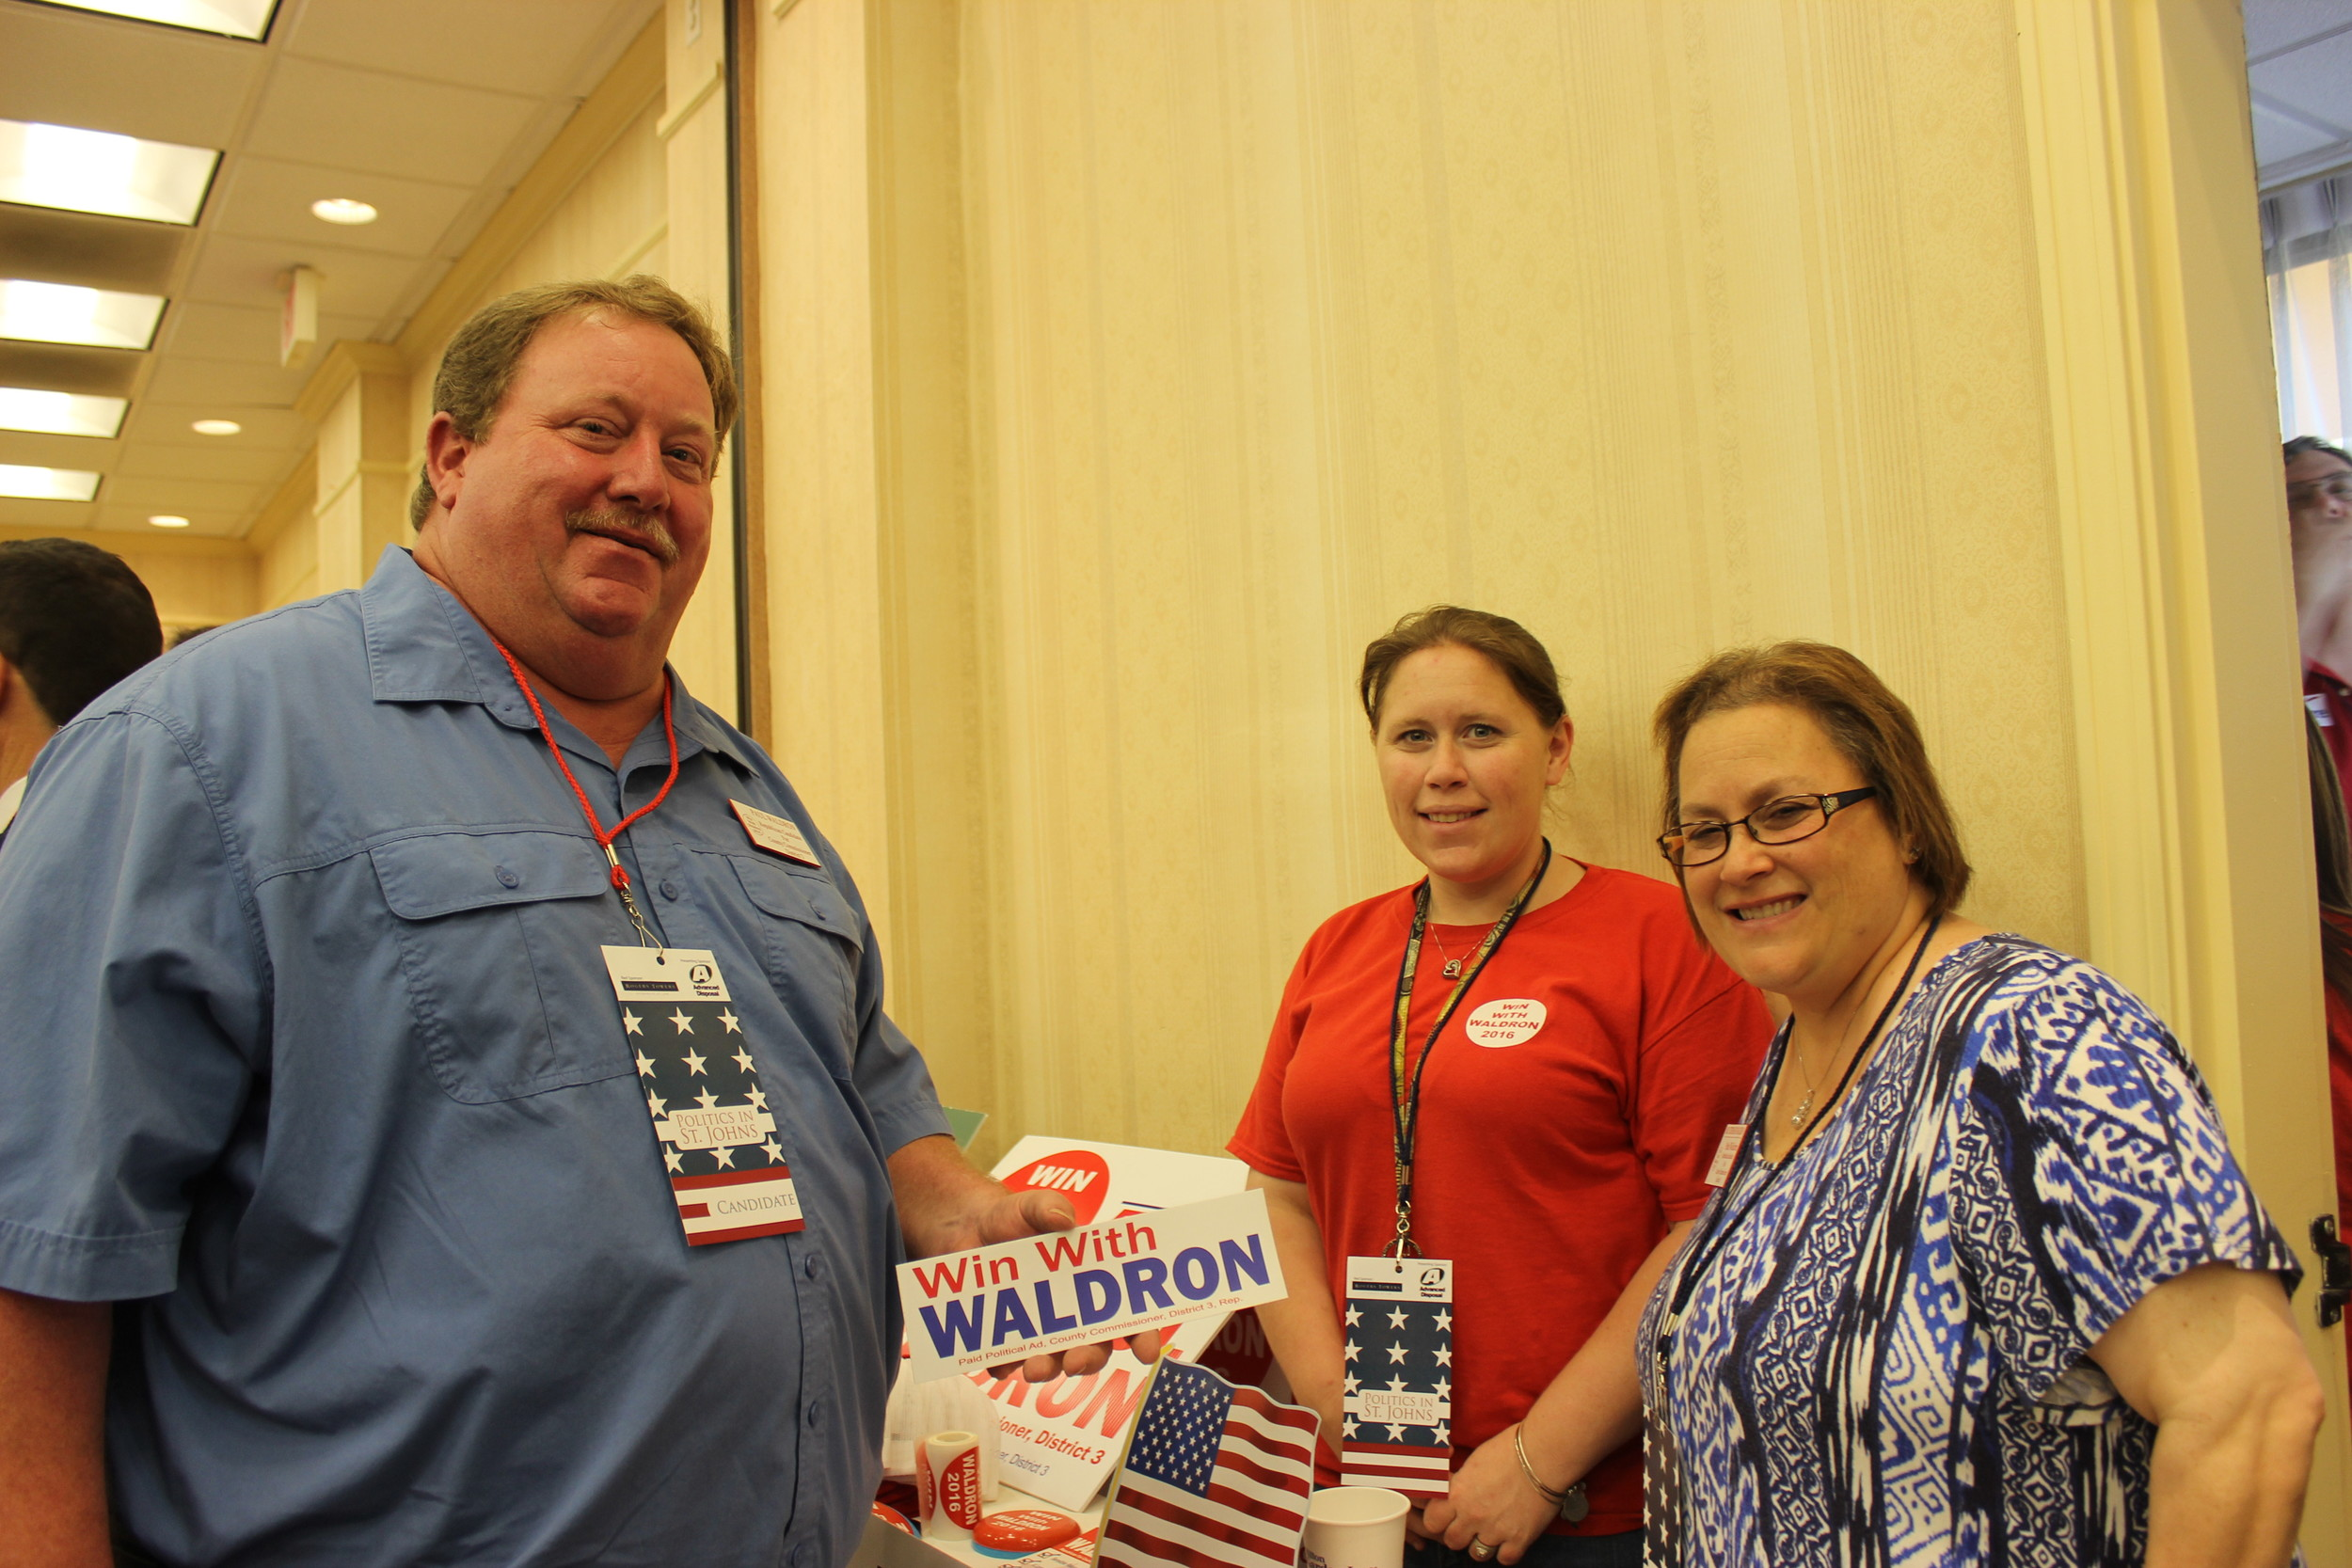 County Commission Candidate (District 3) Paul Waldron, Ashley Zapata and Stephanie Waldron